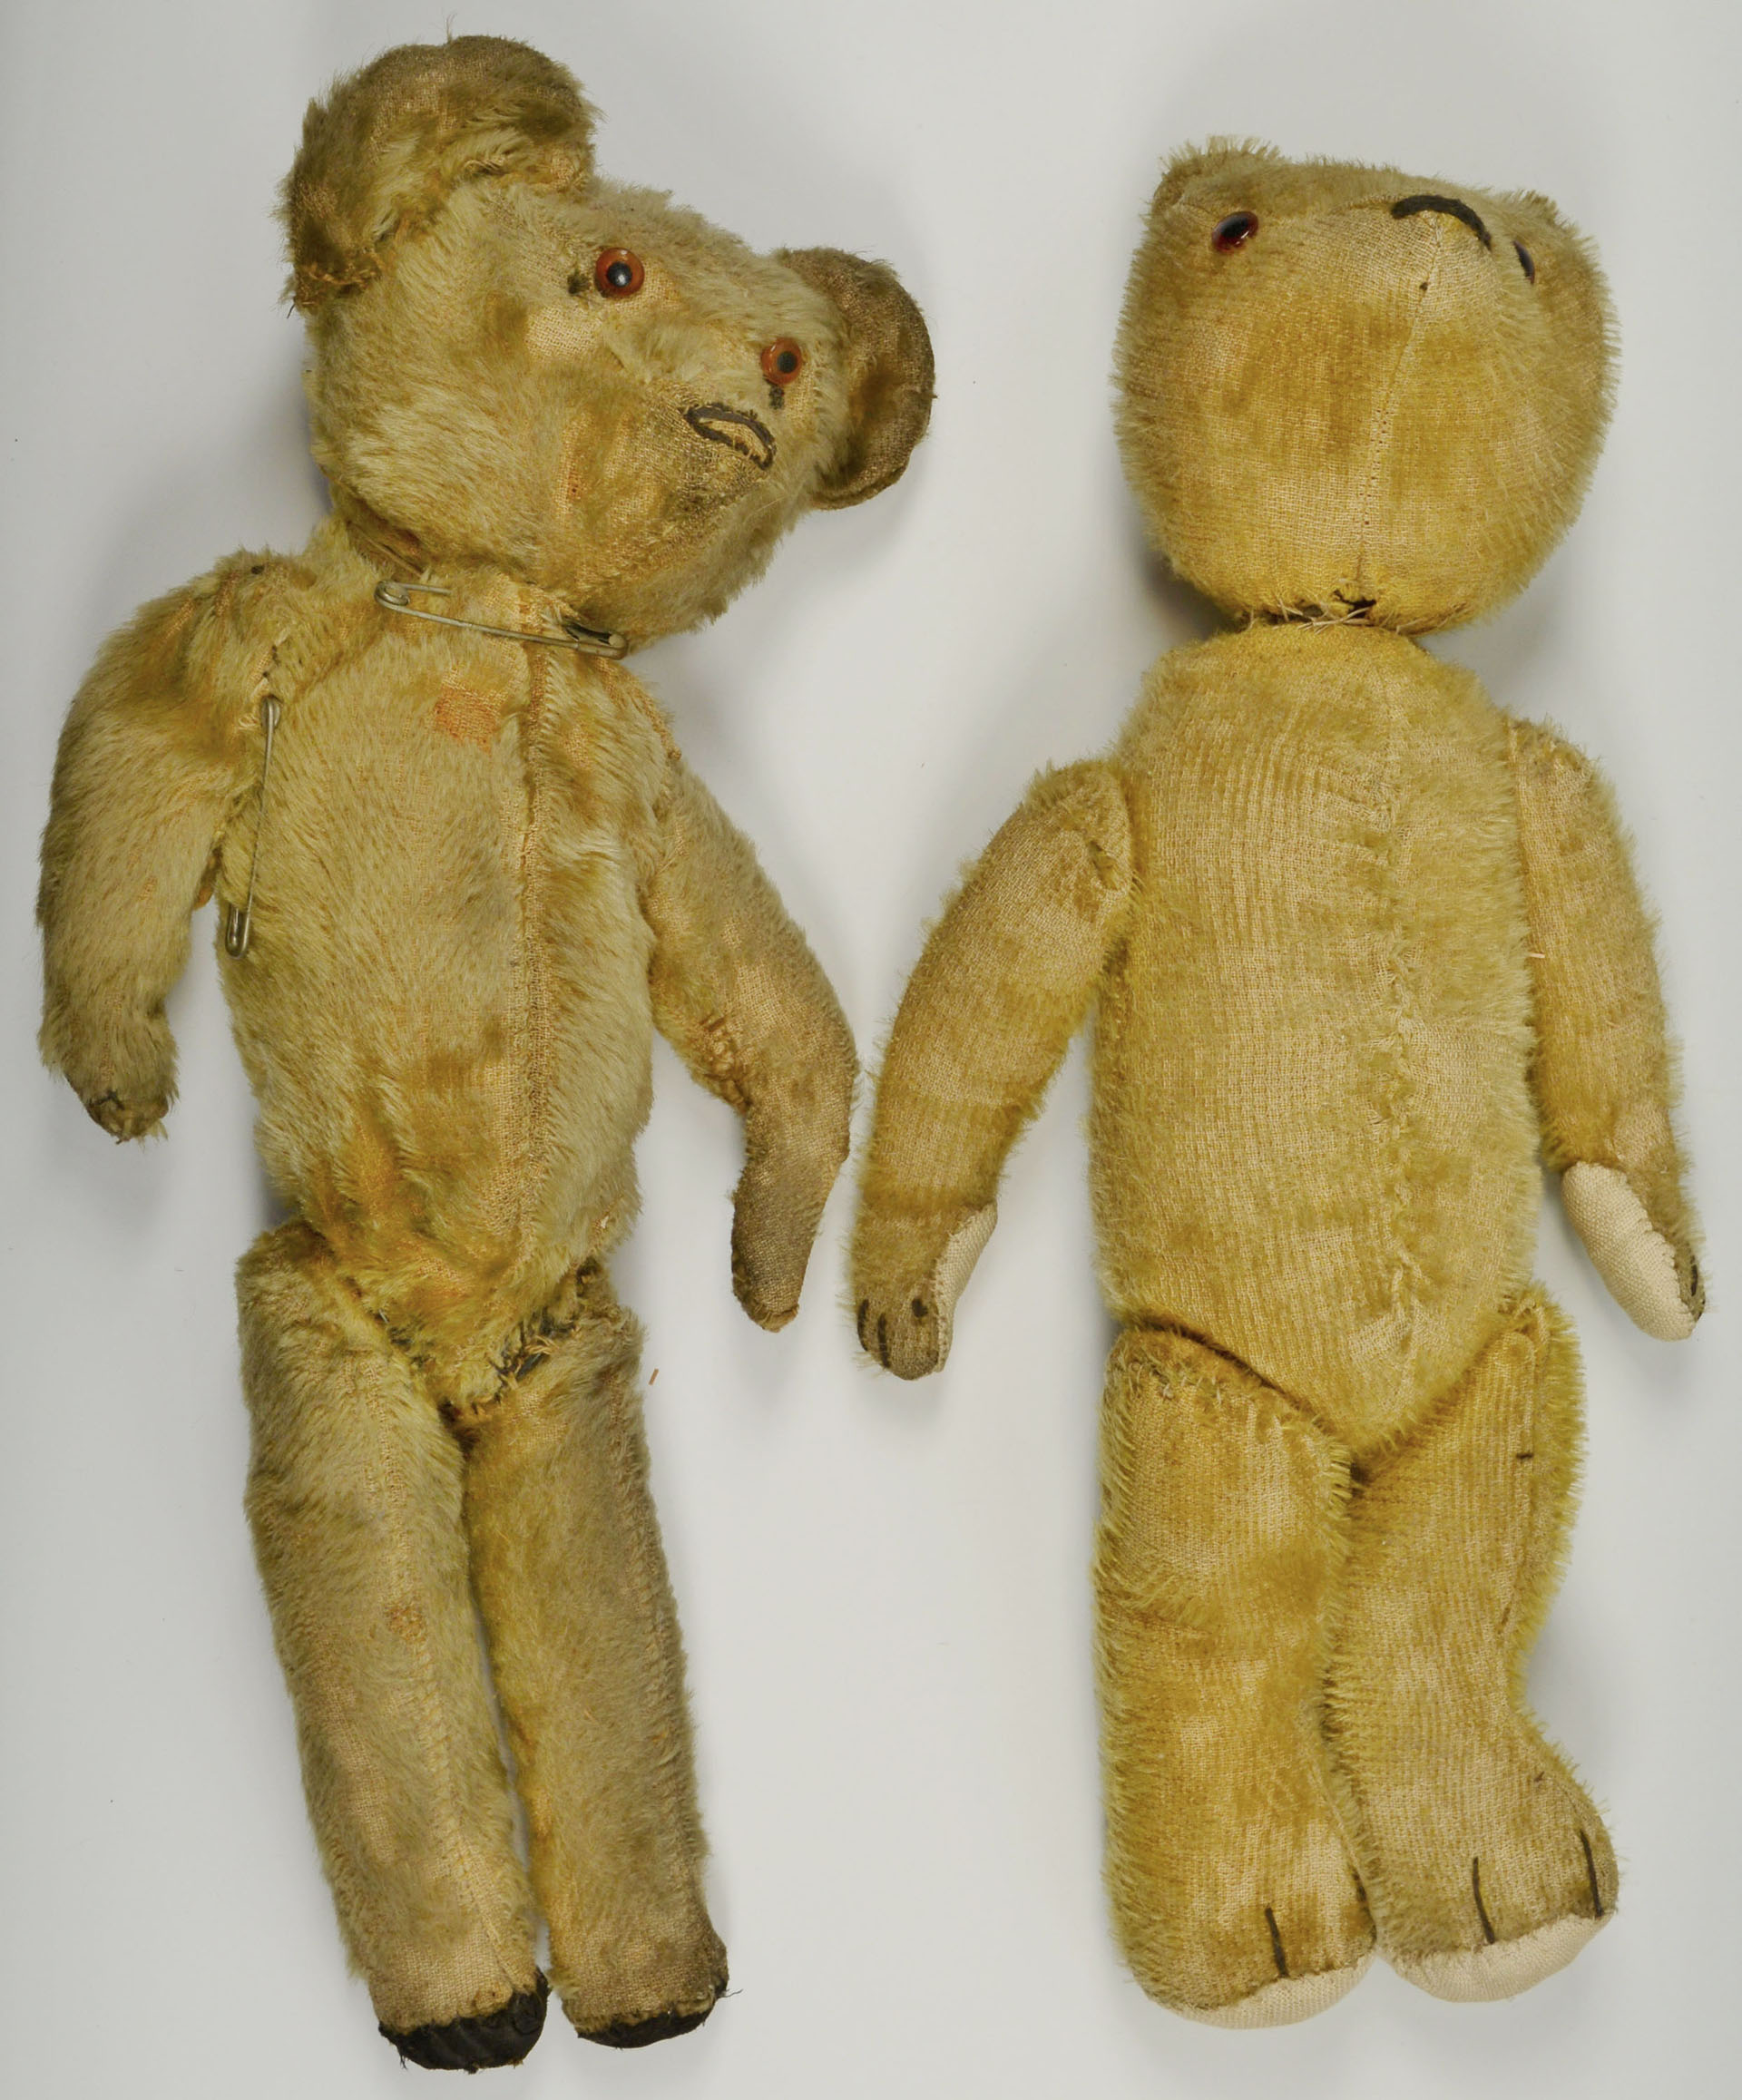 20th Century Toys : Early th century toys child items